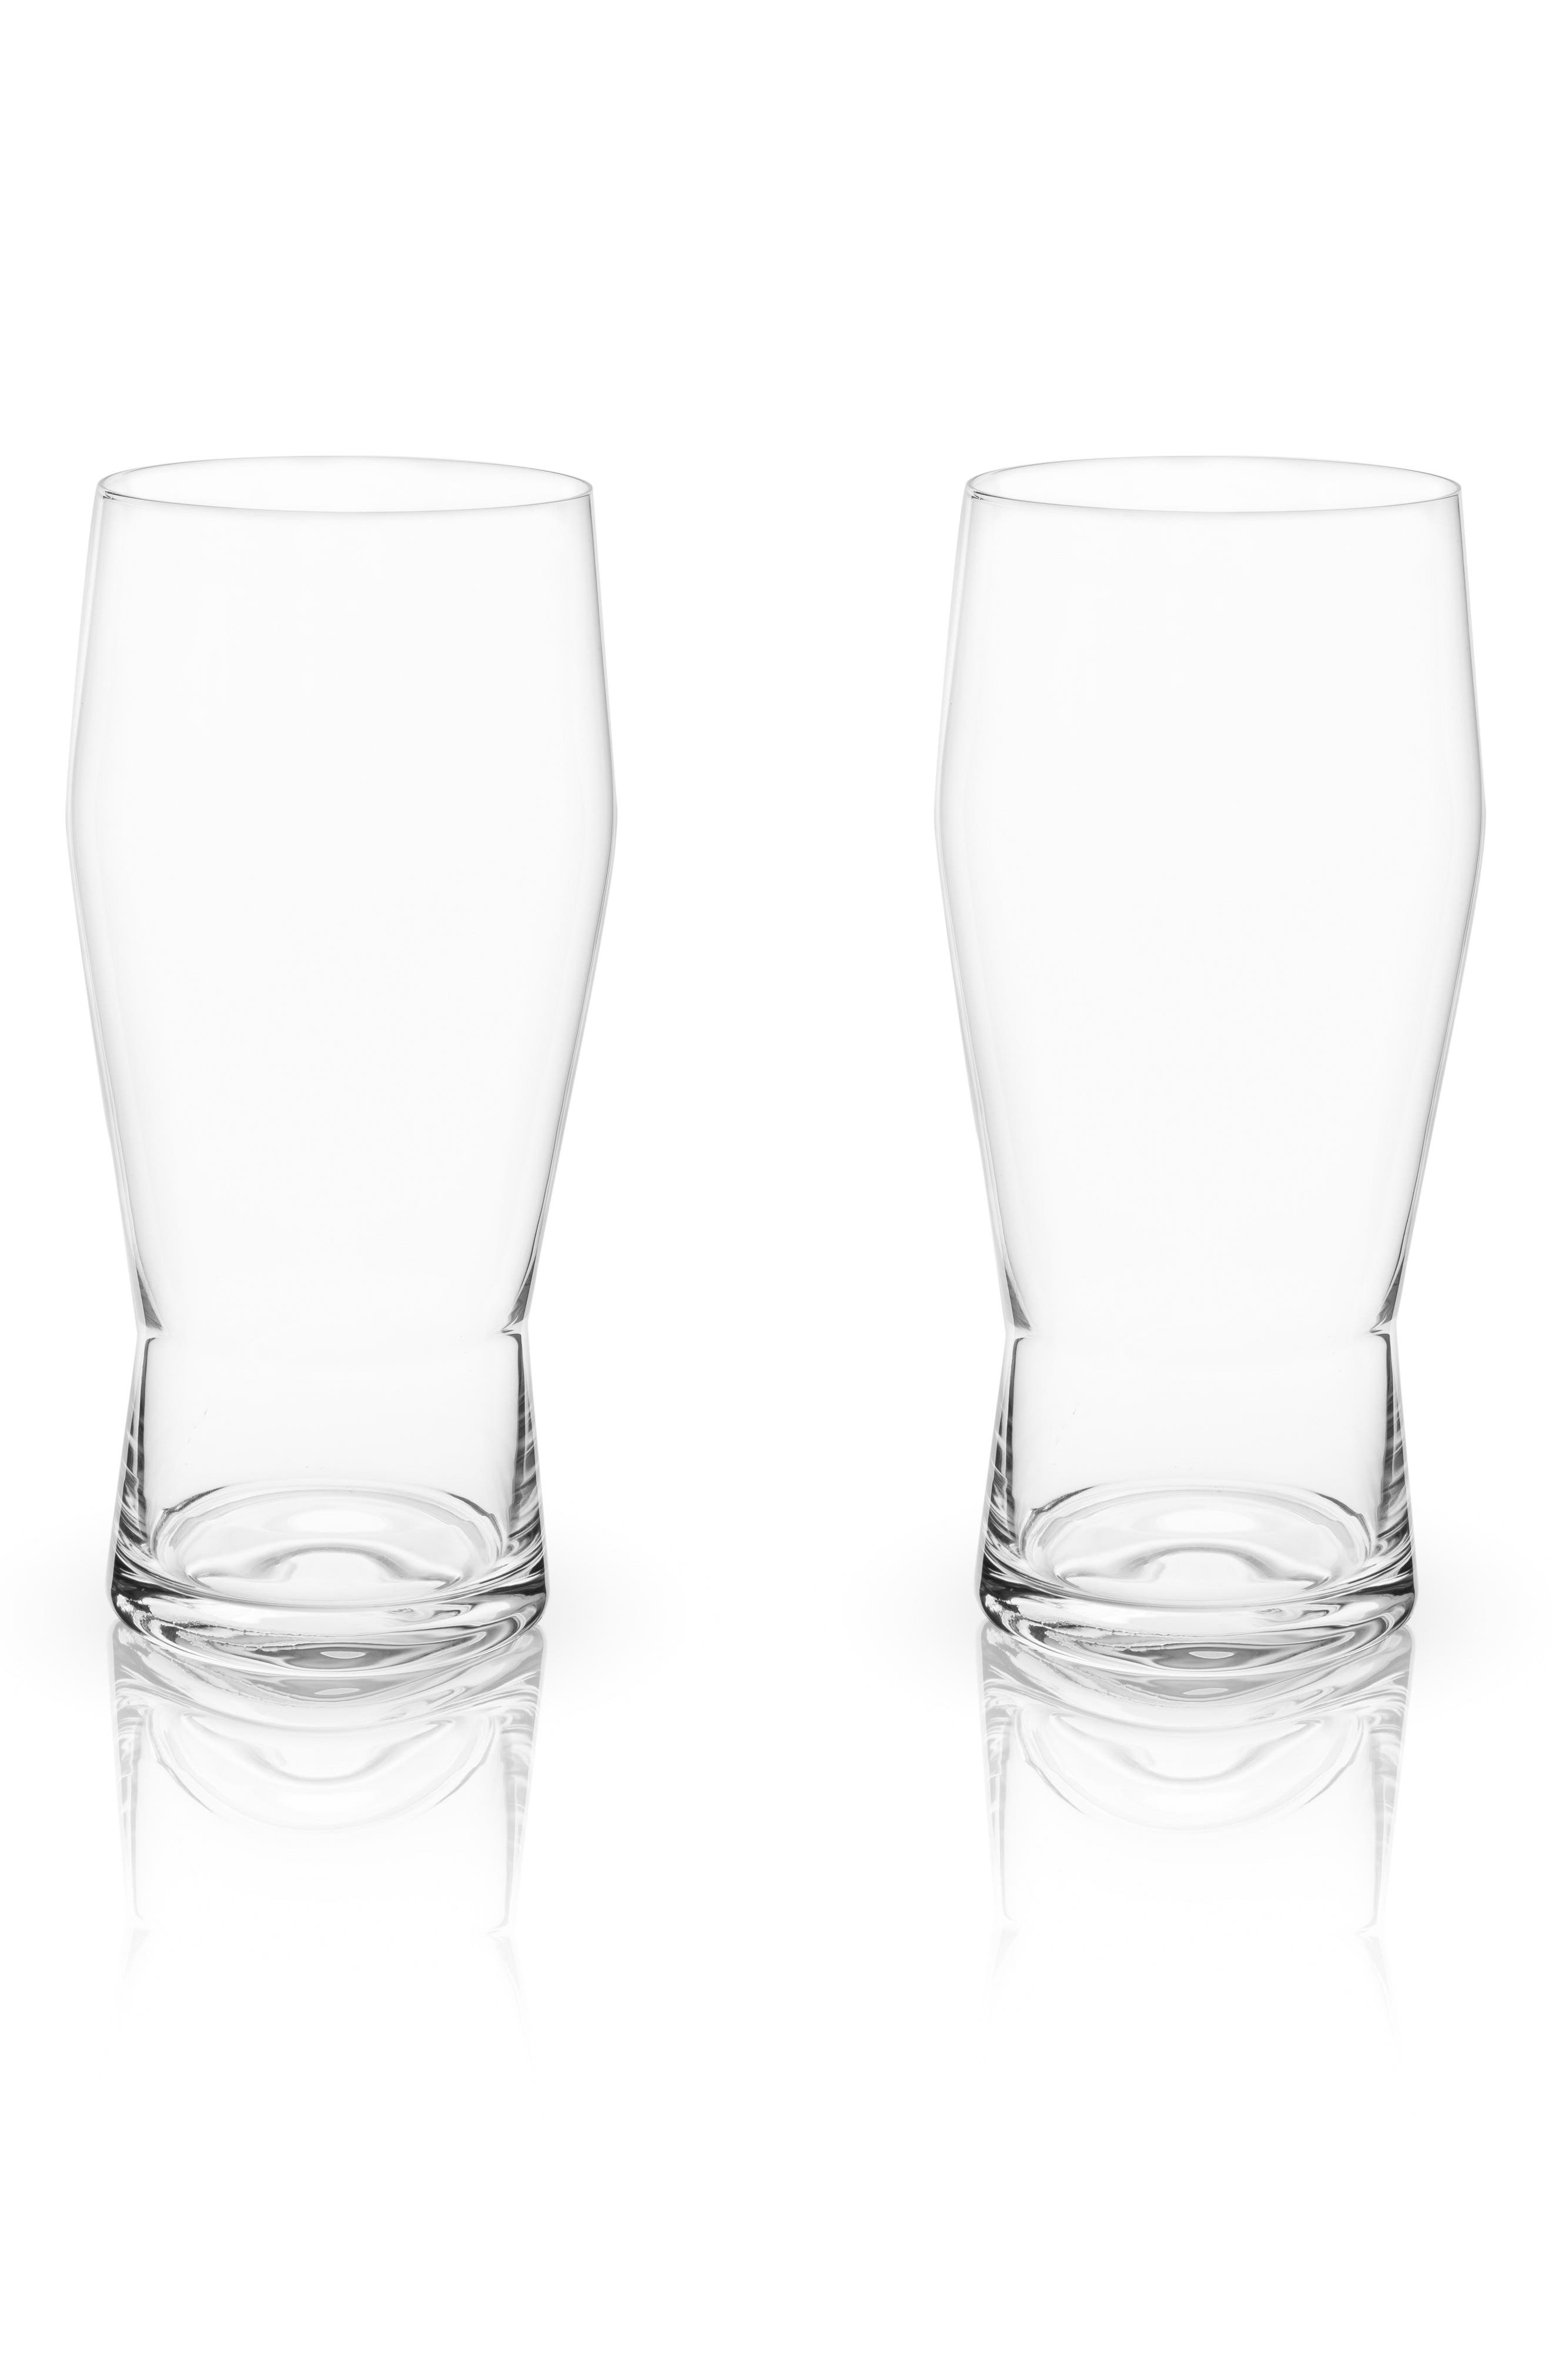 Set of 2 Pub Glasses,                             Main thumbnail 1, color,                             100